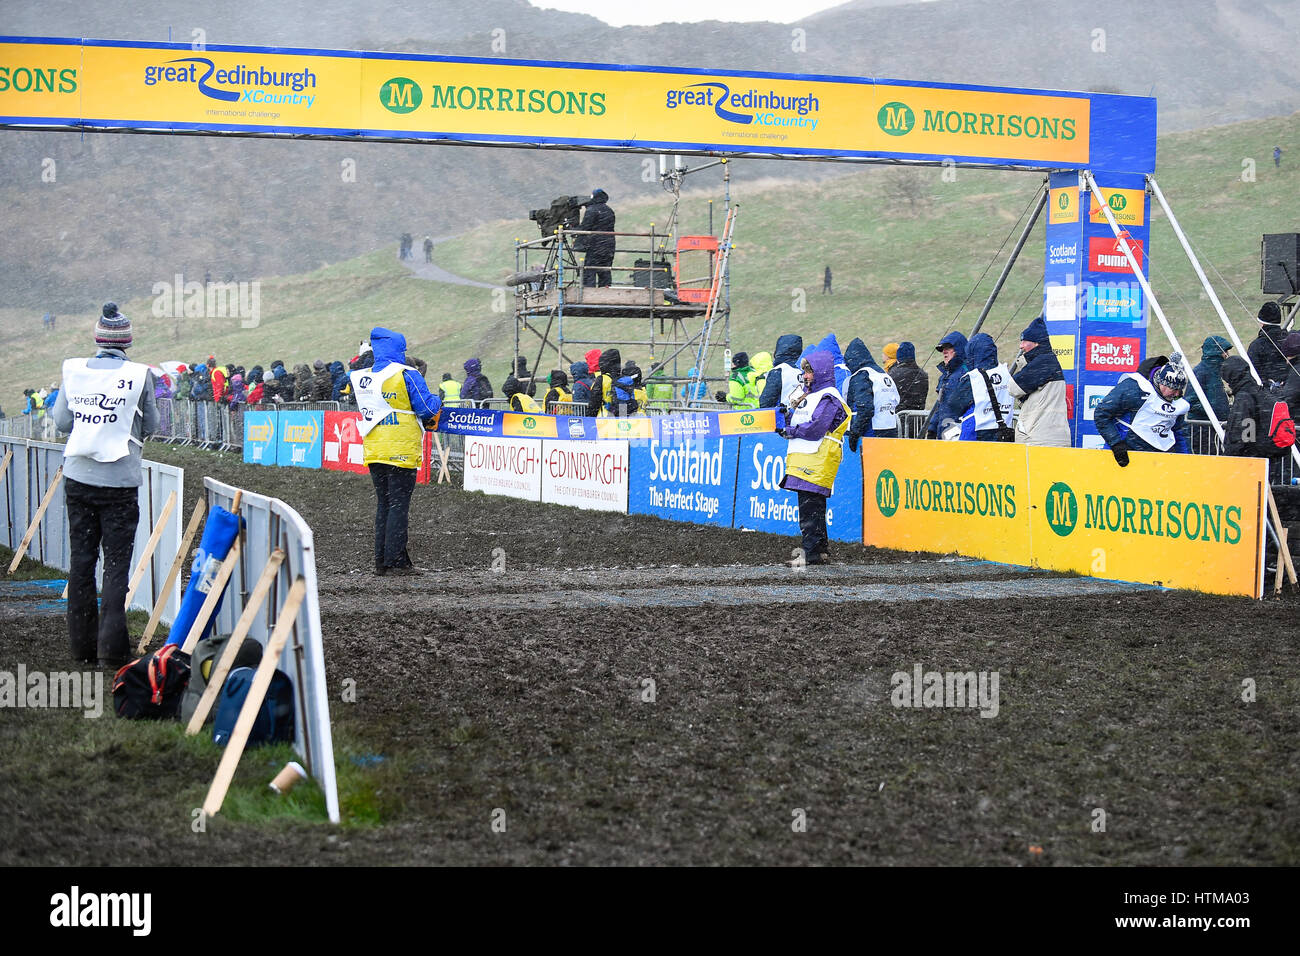 EDINBURGH, SCOTLAND, UK, January 10, 2015 - snow blizard and finish line for the Woman's 6k race at the Great - Stock Image